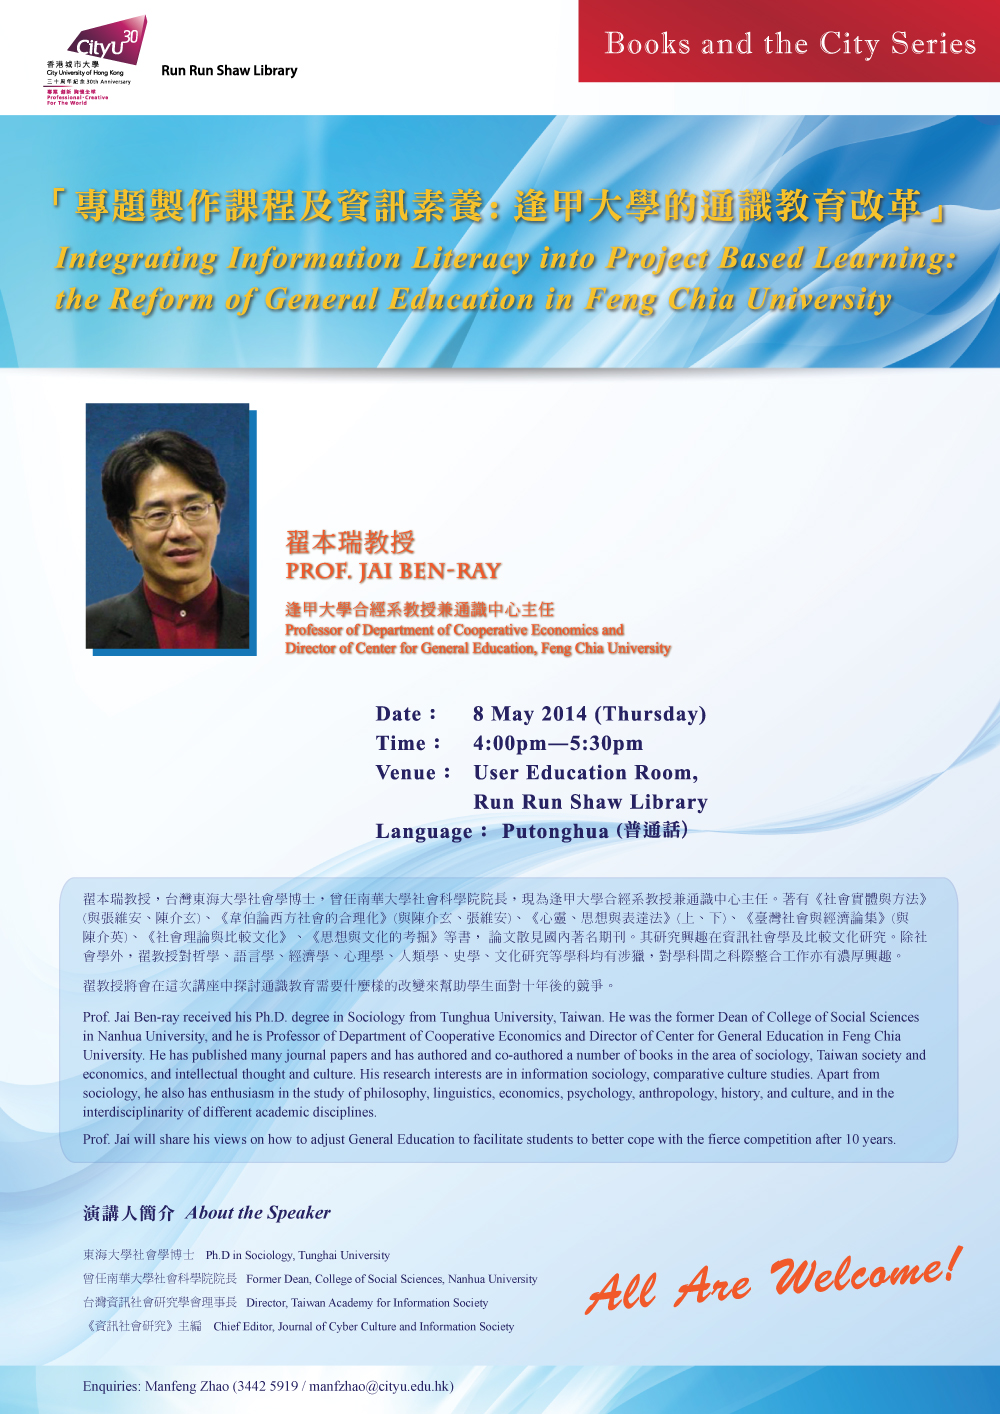 Integrating Information Literacy into Project Based Learning: the Reform of General Education in Feng Chia University 專題製作課程及資訊素養︰逢甲大學的通識教育改革          Venue: User Education Room, Run Run Shaw Library.         Date: 8 May 2014 (Thursday).         Time: 4:00 pm - 5:30 pm.         Language: Putonghua.         Enquiry: 3442-5919 (Manfeng Zhao).         Email: manfzhao@cityu.edu.hk